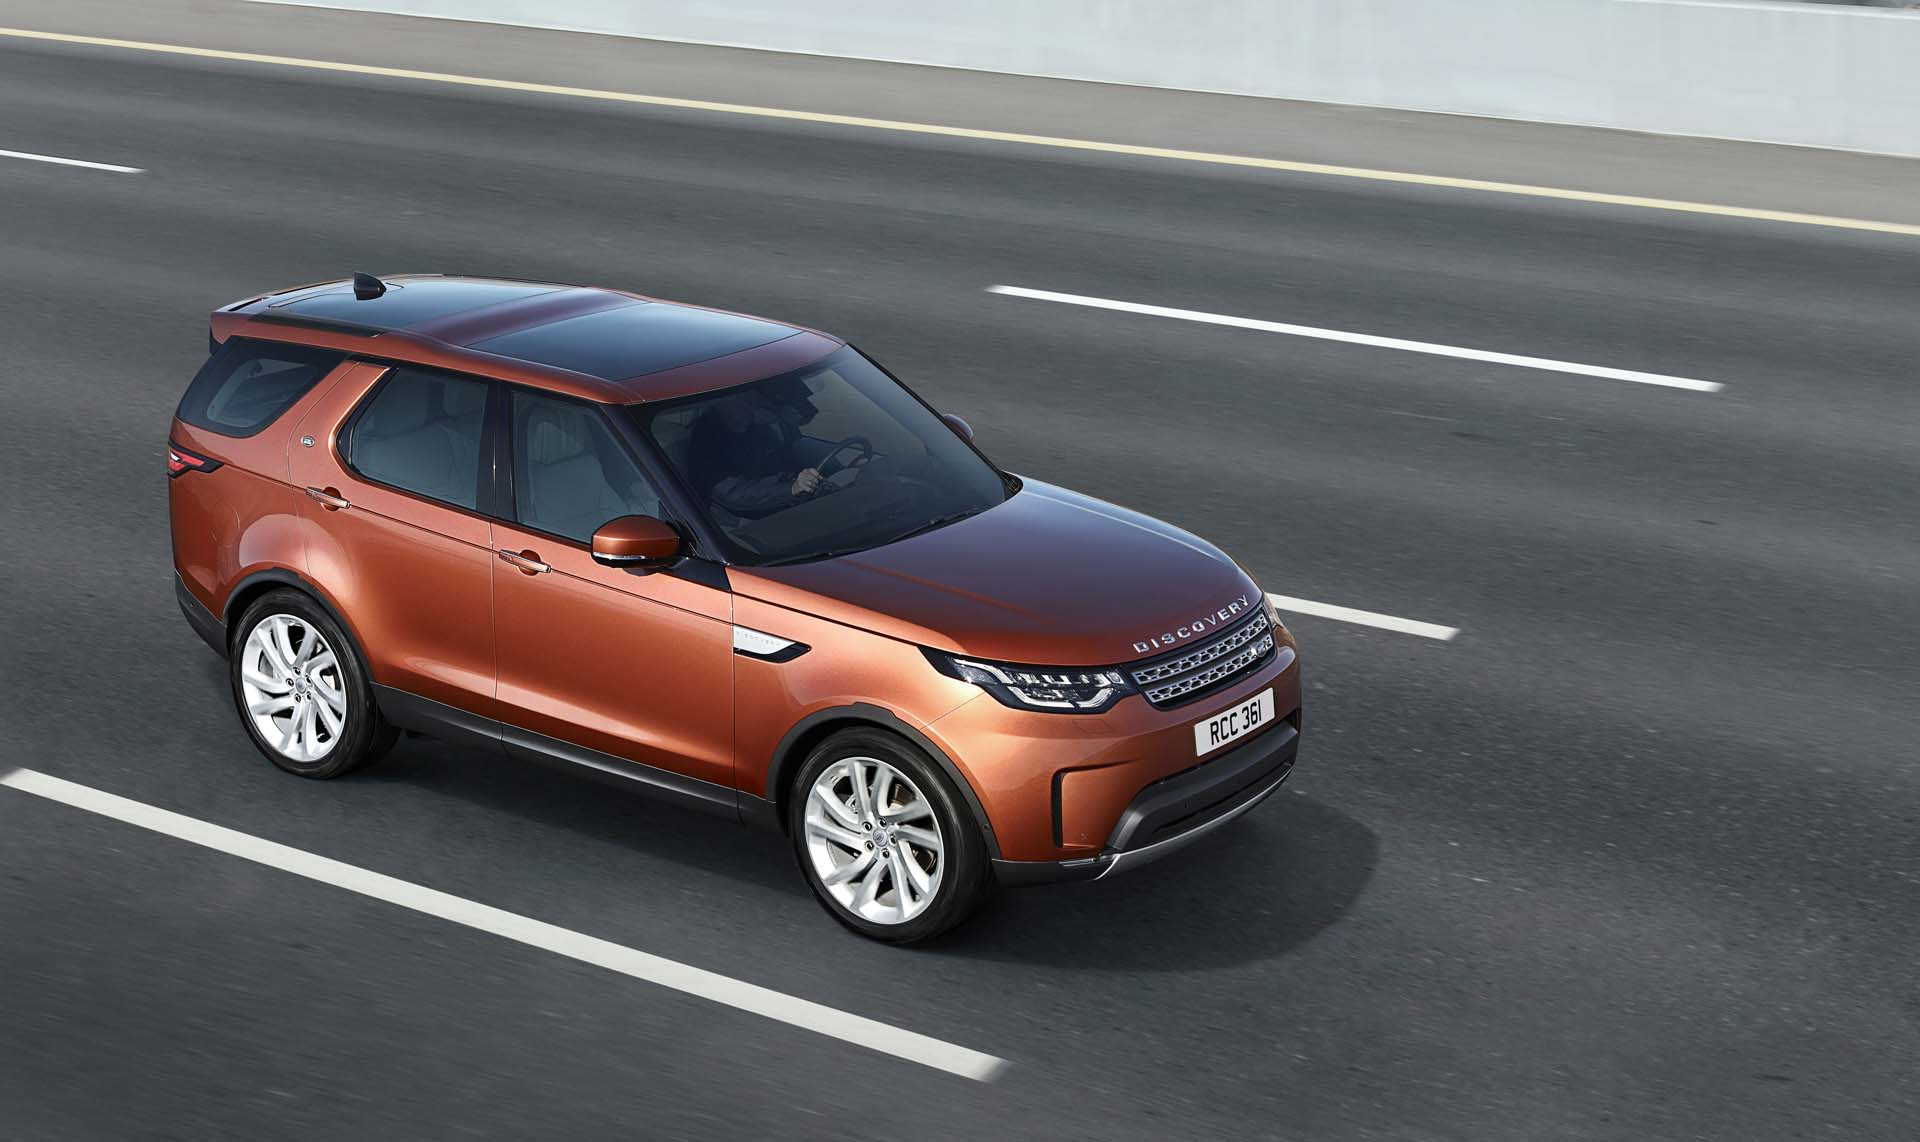 2018 Land Rover Discovery Gas Mileage The Car Connection